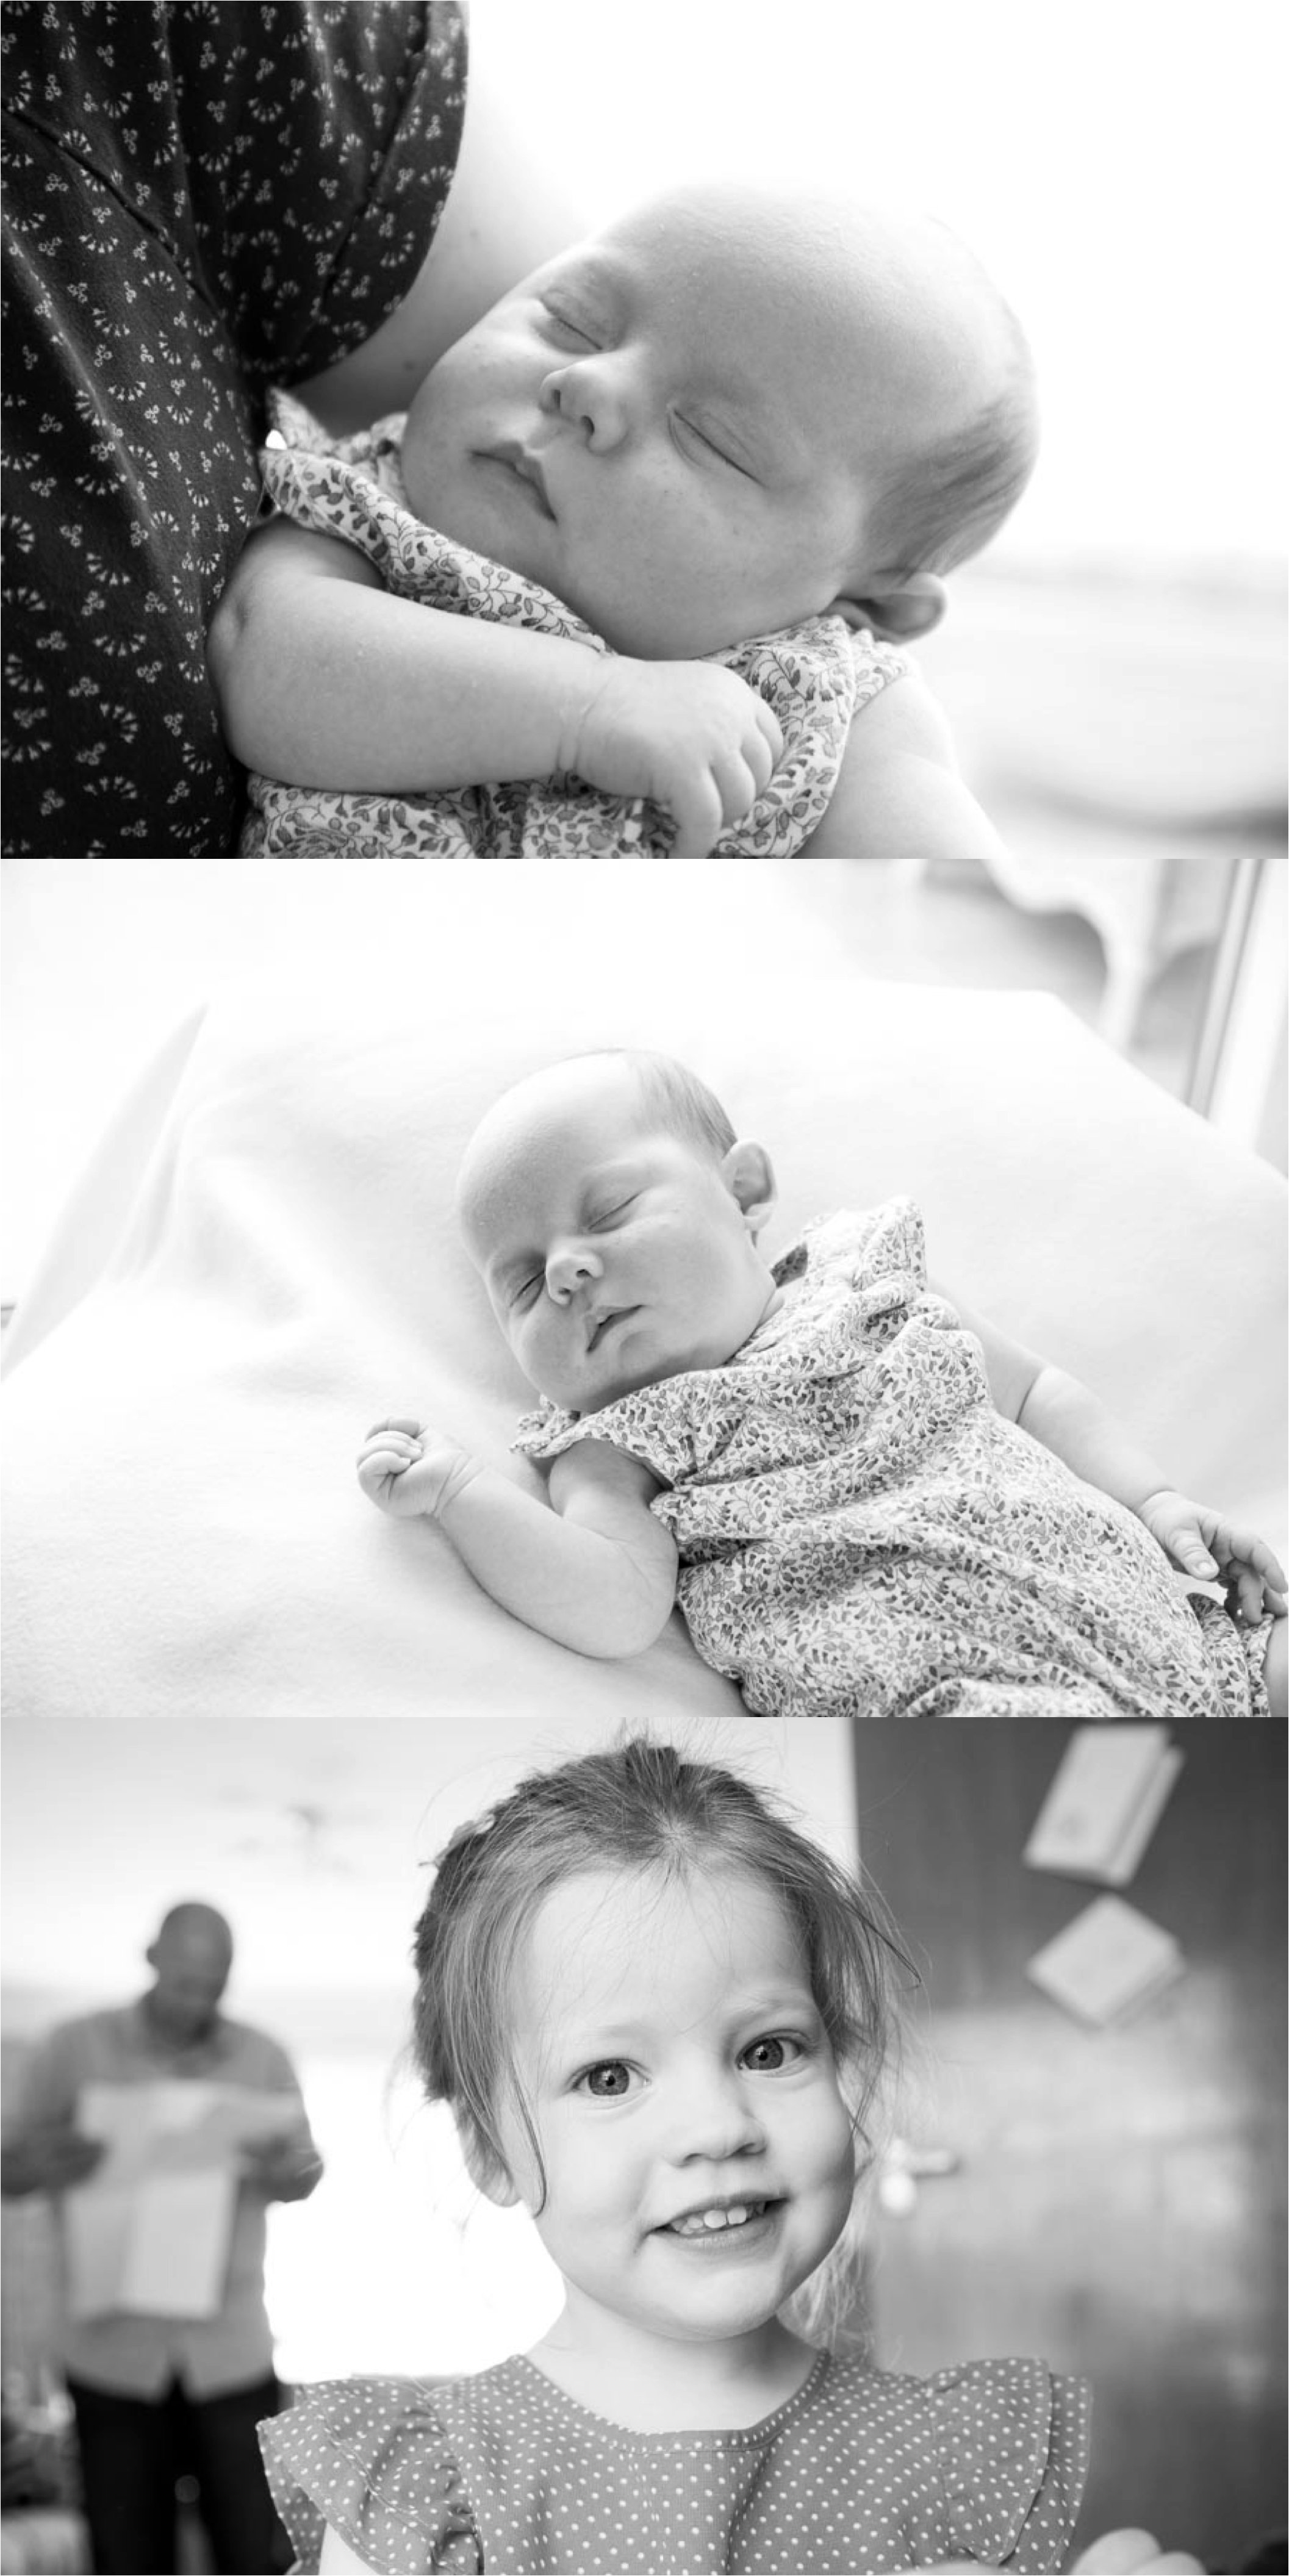 Newborn photography in black and white, bury st edmunds suffolk